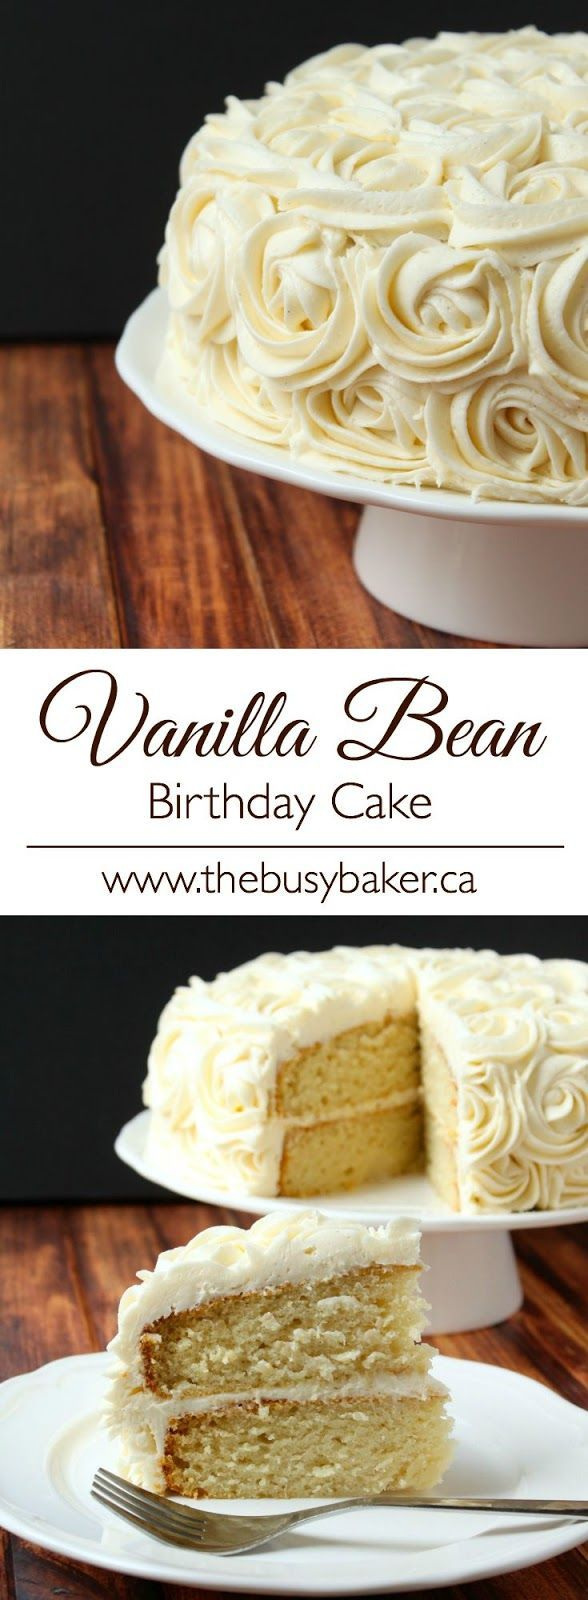 379 best images about cakes on Pinterest